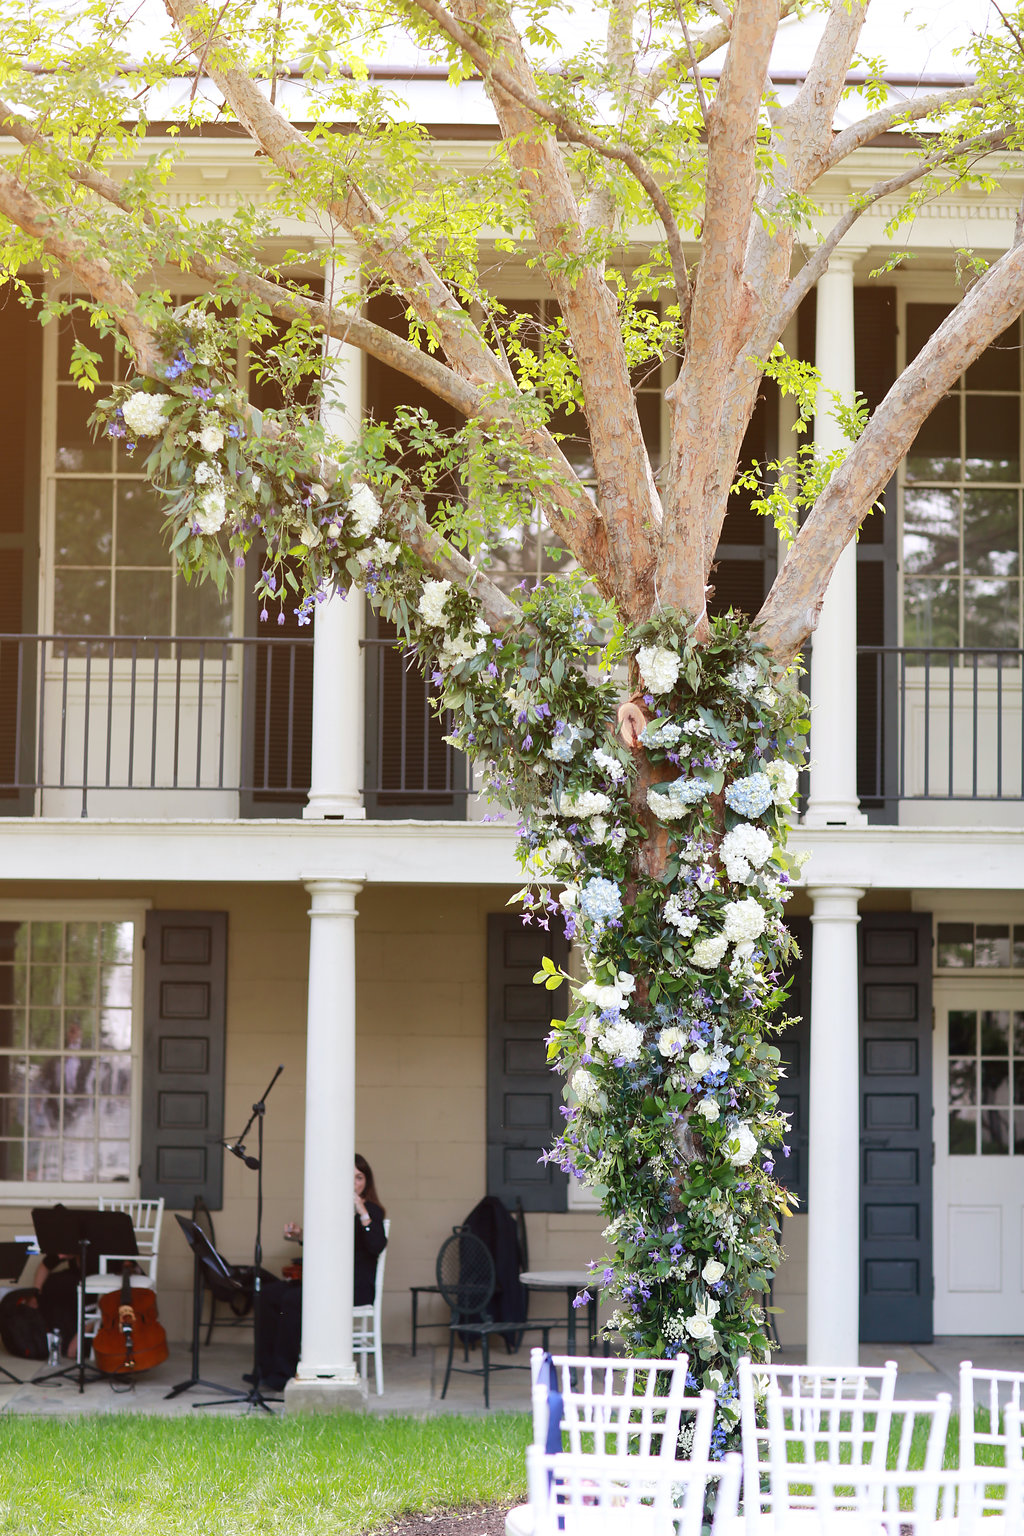 Outdoor spring wedding ceremony arch using tree at Cincinnati's Taft Museum with blue and white florals and Mediterranean greenery. Florals by Yellow Canary www.yellowcanaryonline.com